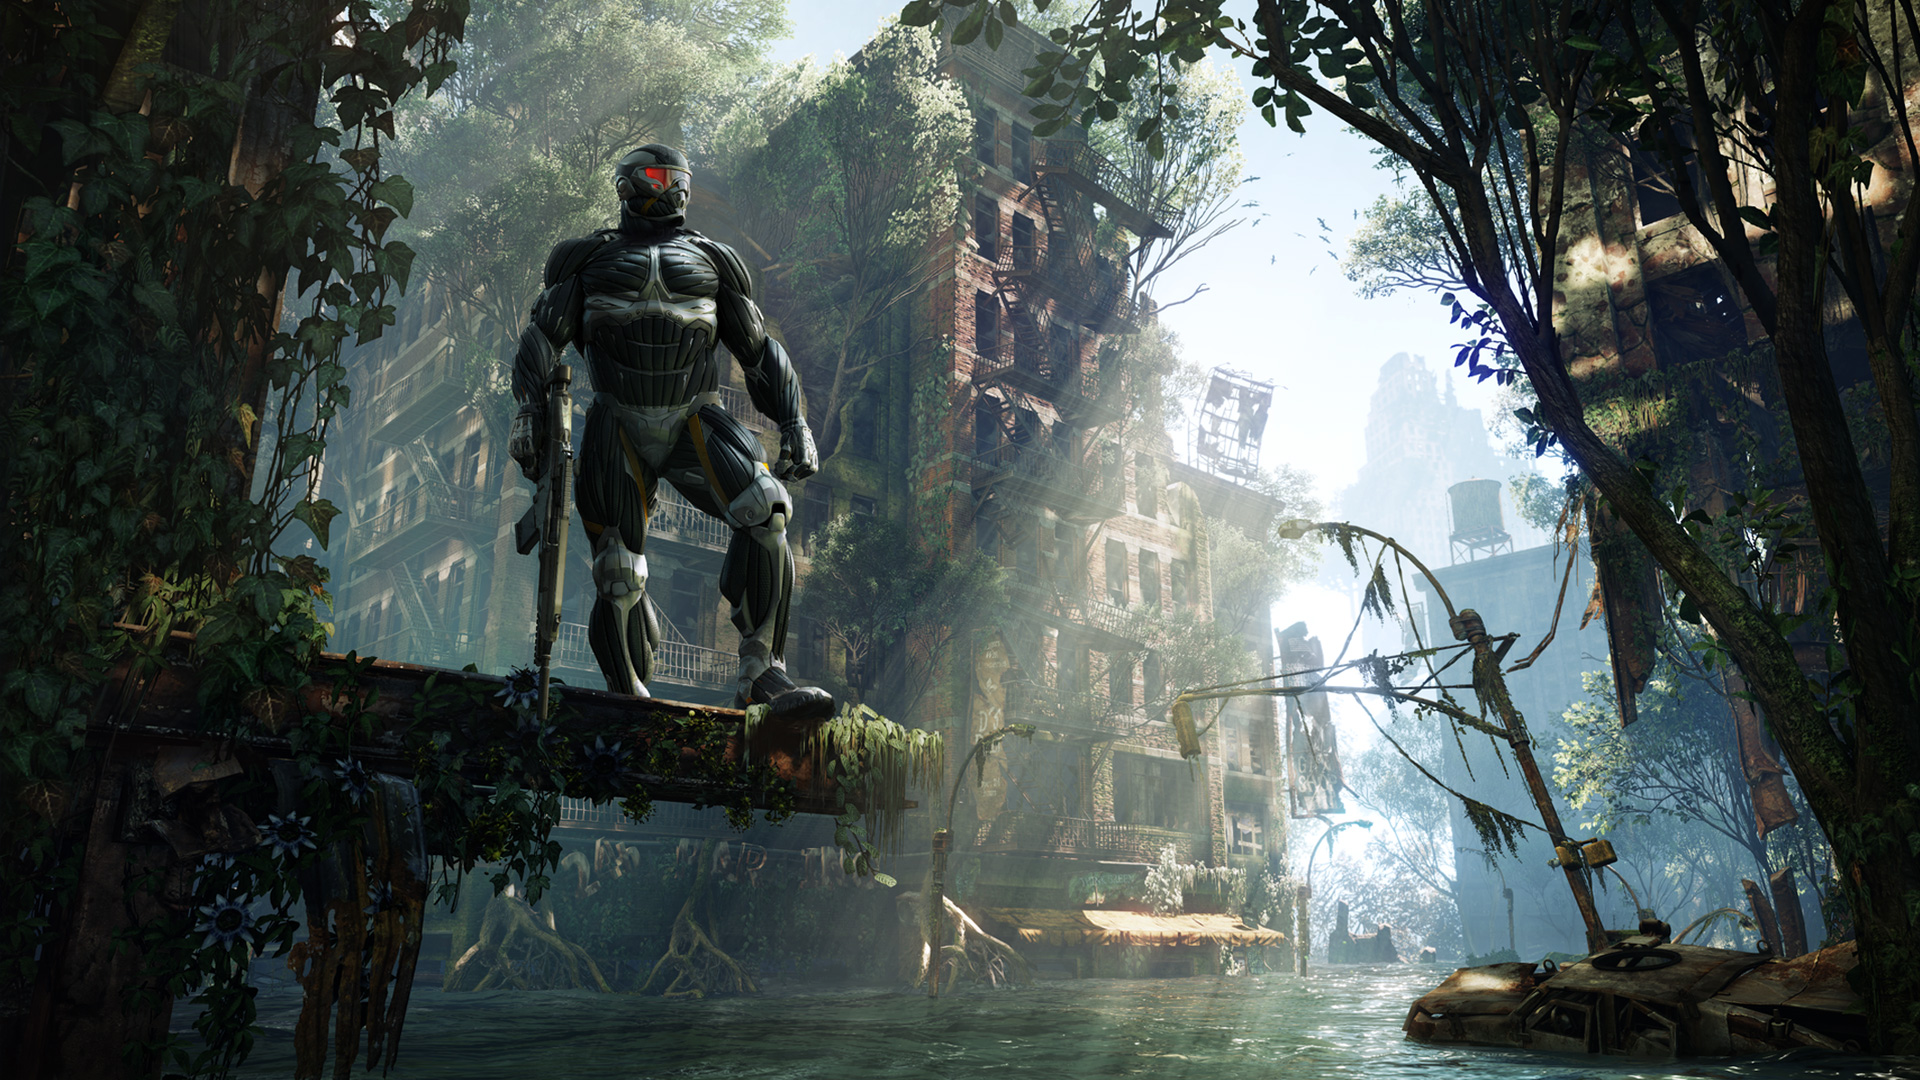 Free Crysis 3 Wallpaper in 1920x1080